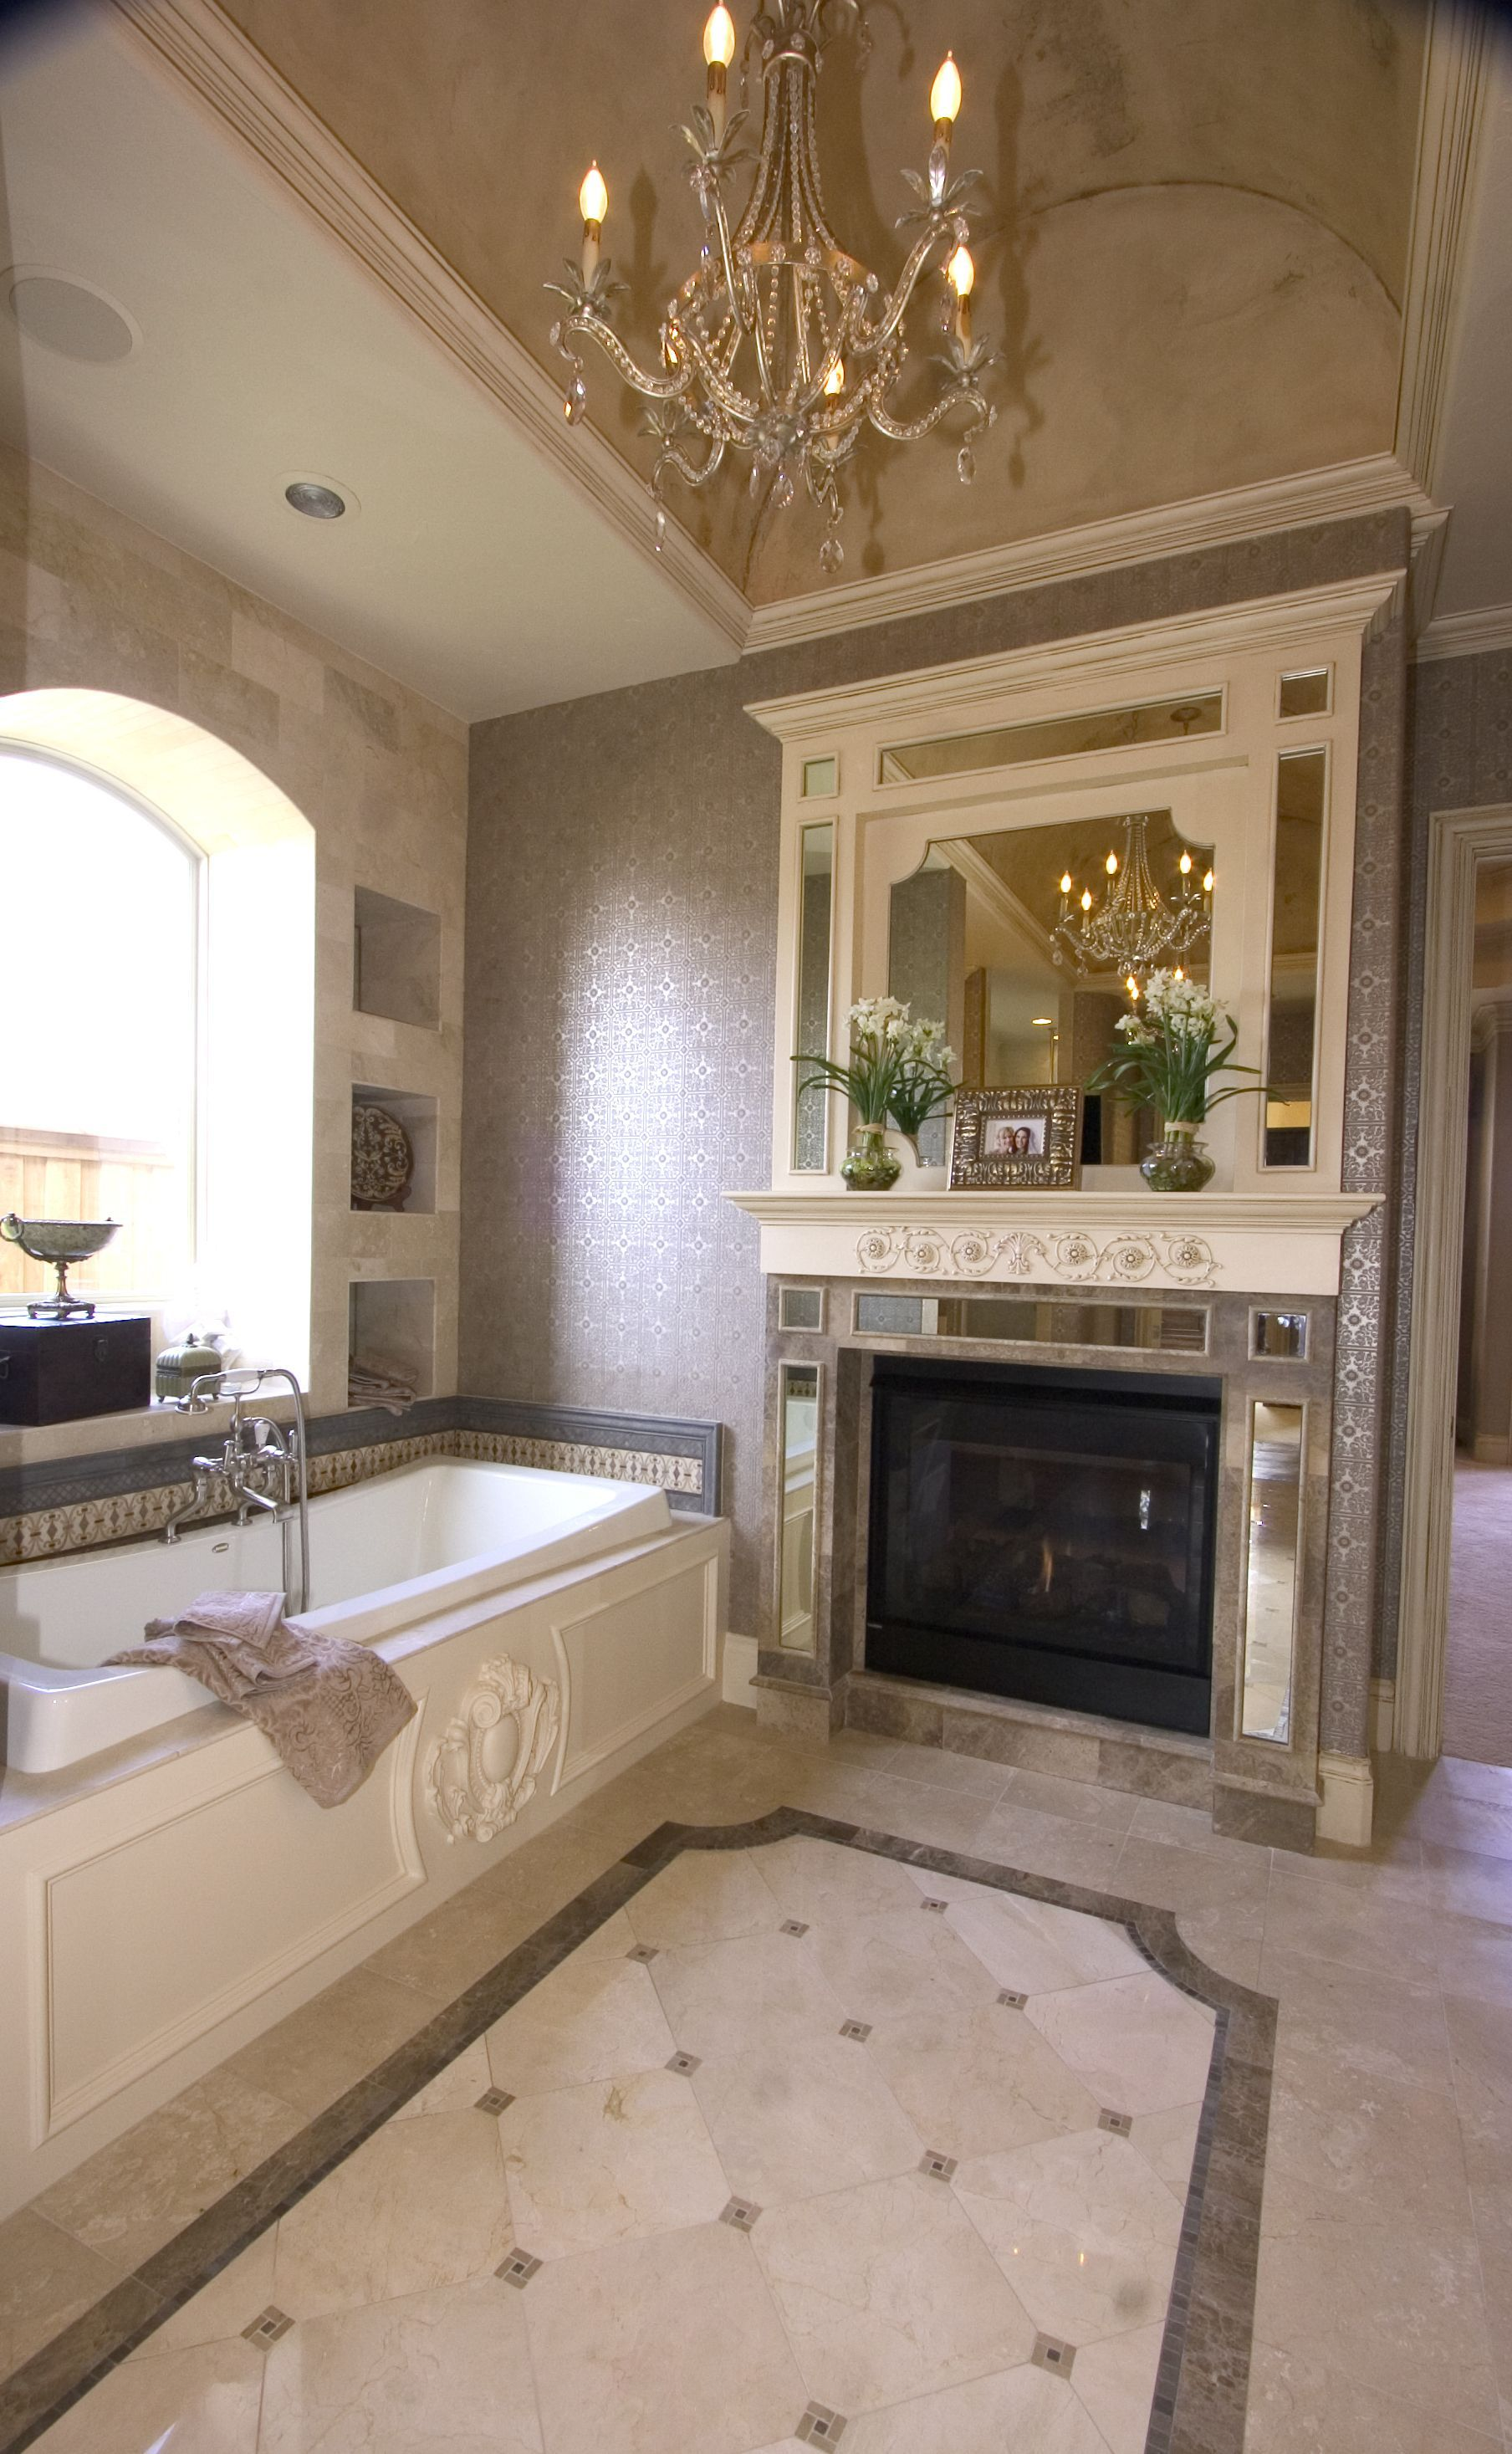 Pin On Dress My Nest Family Peace Love Upscale master bathrooms upscale